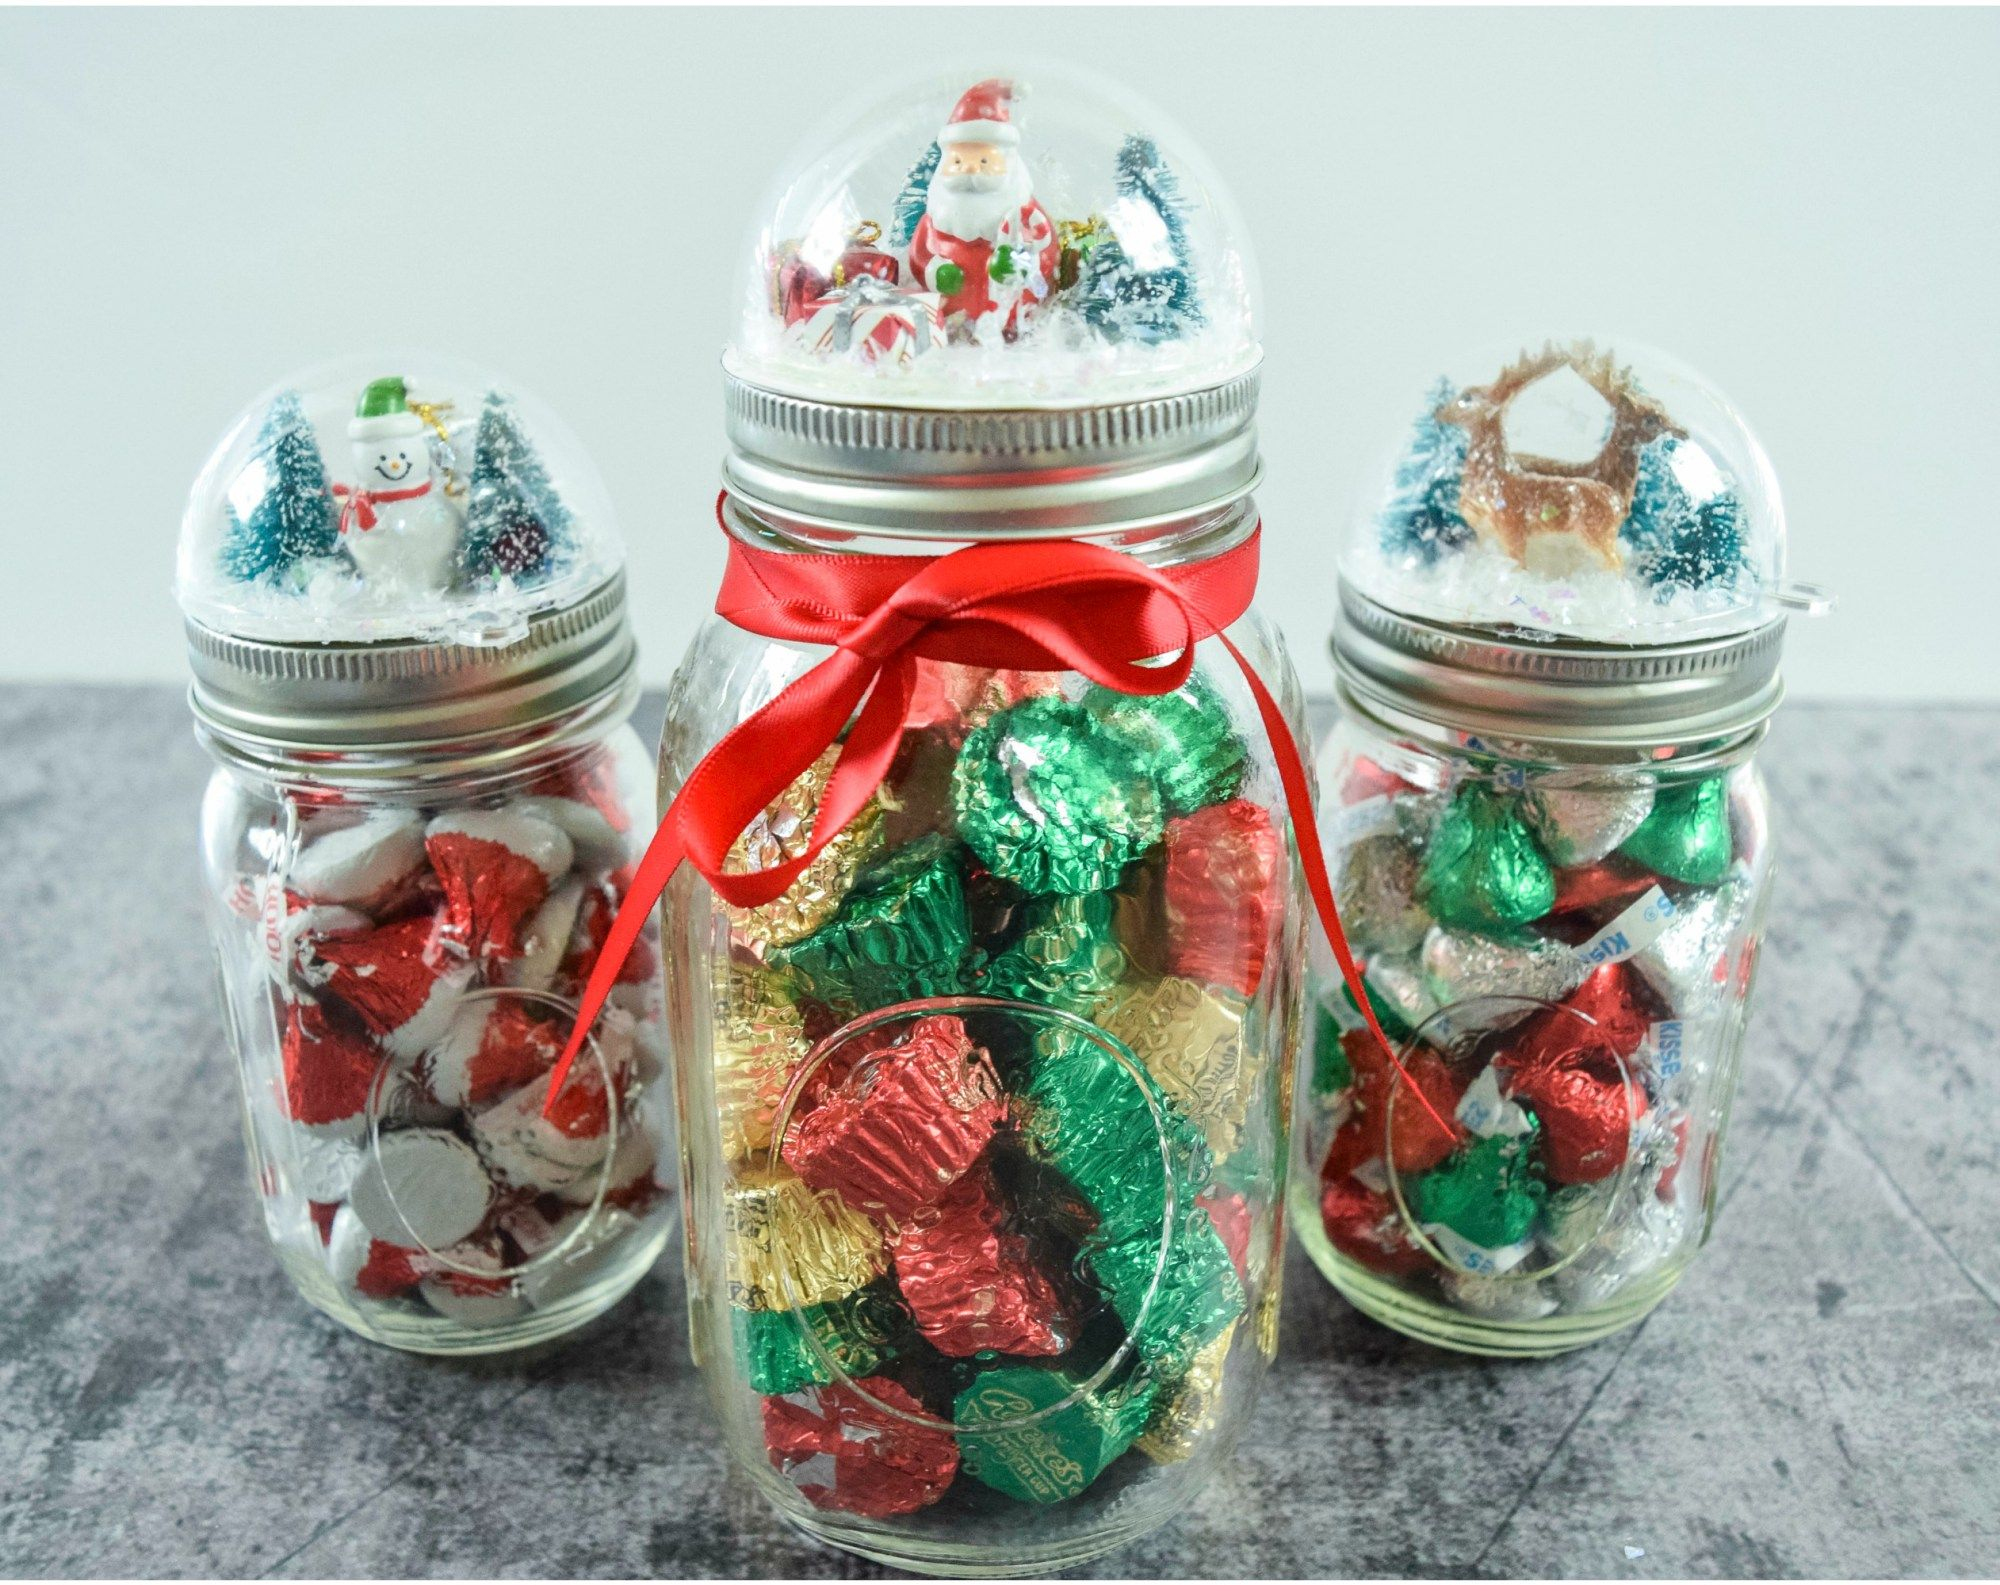 Diy Snowglobe Mason Jar Craft Holiday Gift Craft Tutorial Christmas Mason Jars Mason Jar Christmas Gifts Christmas Jars